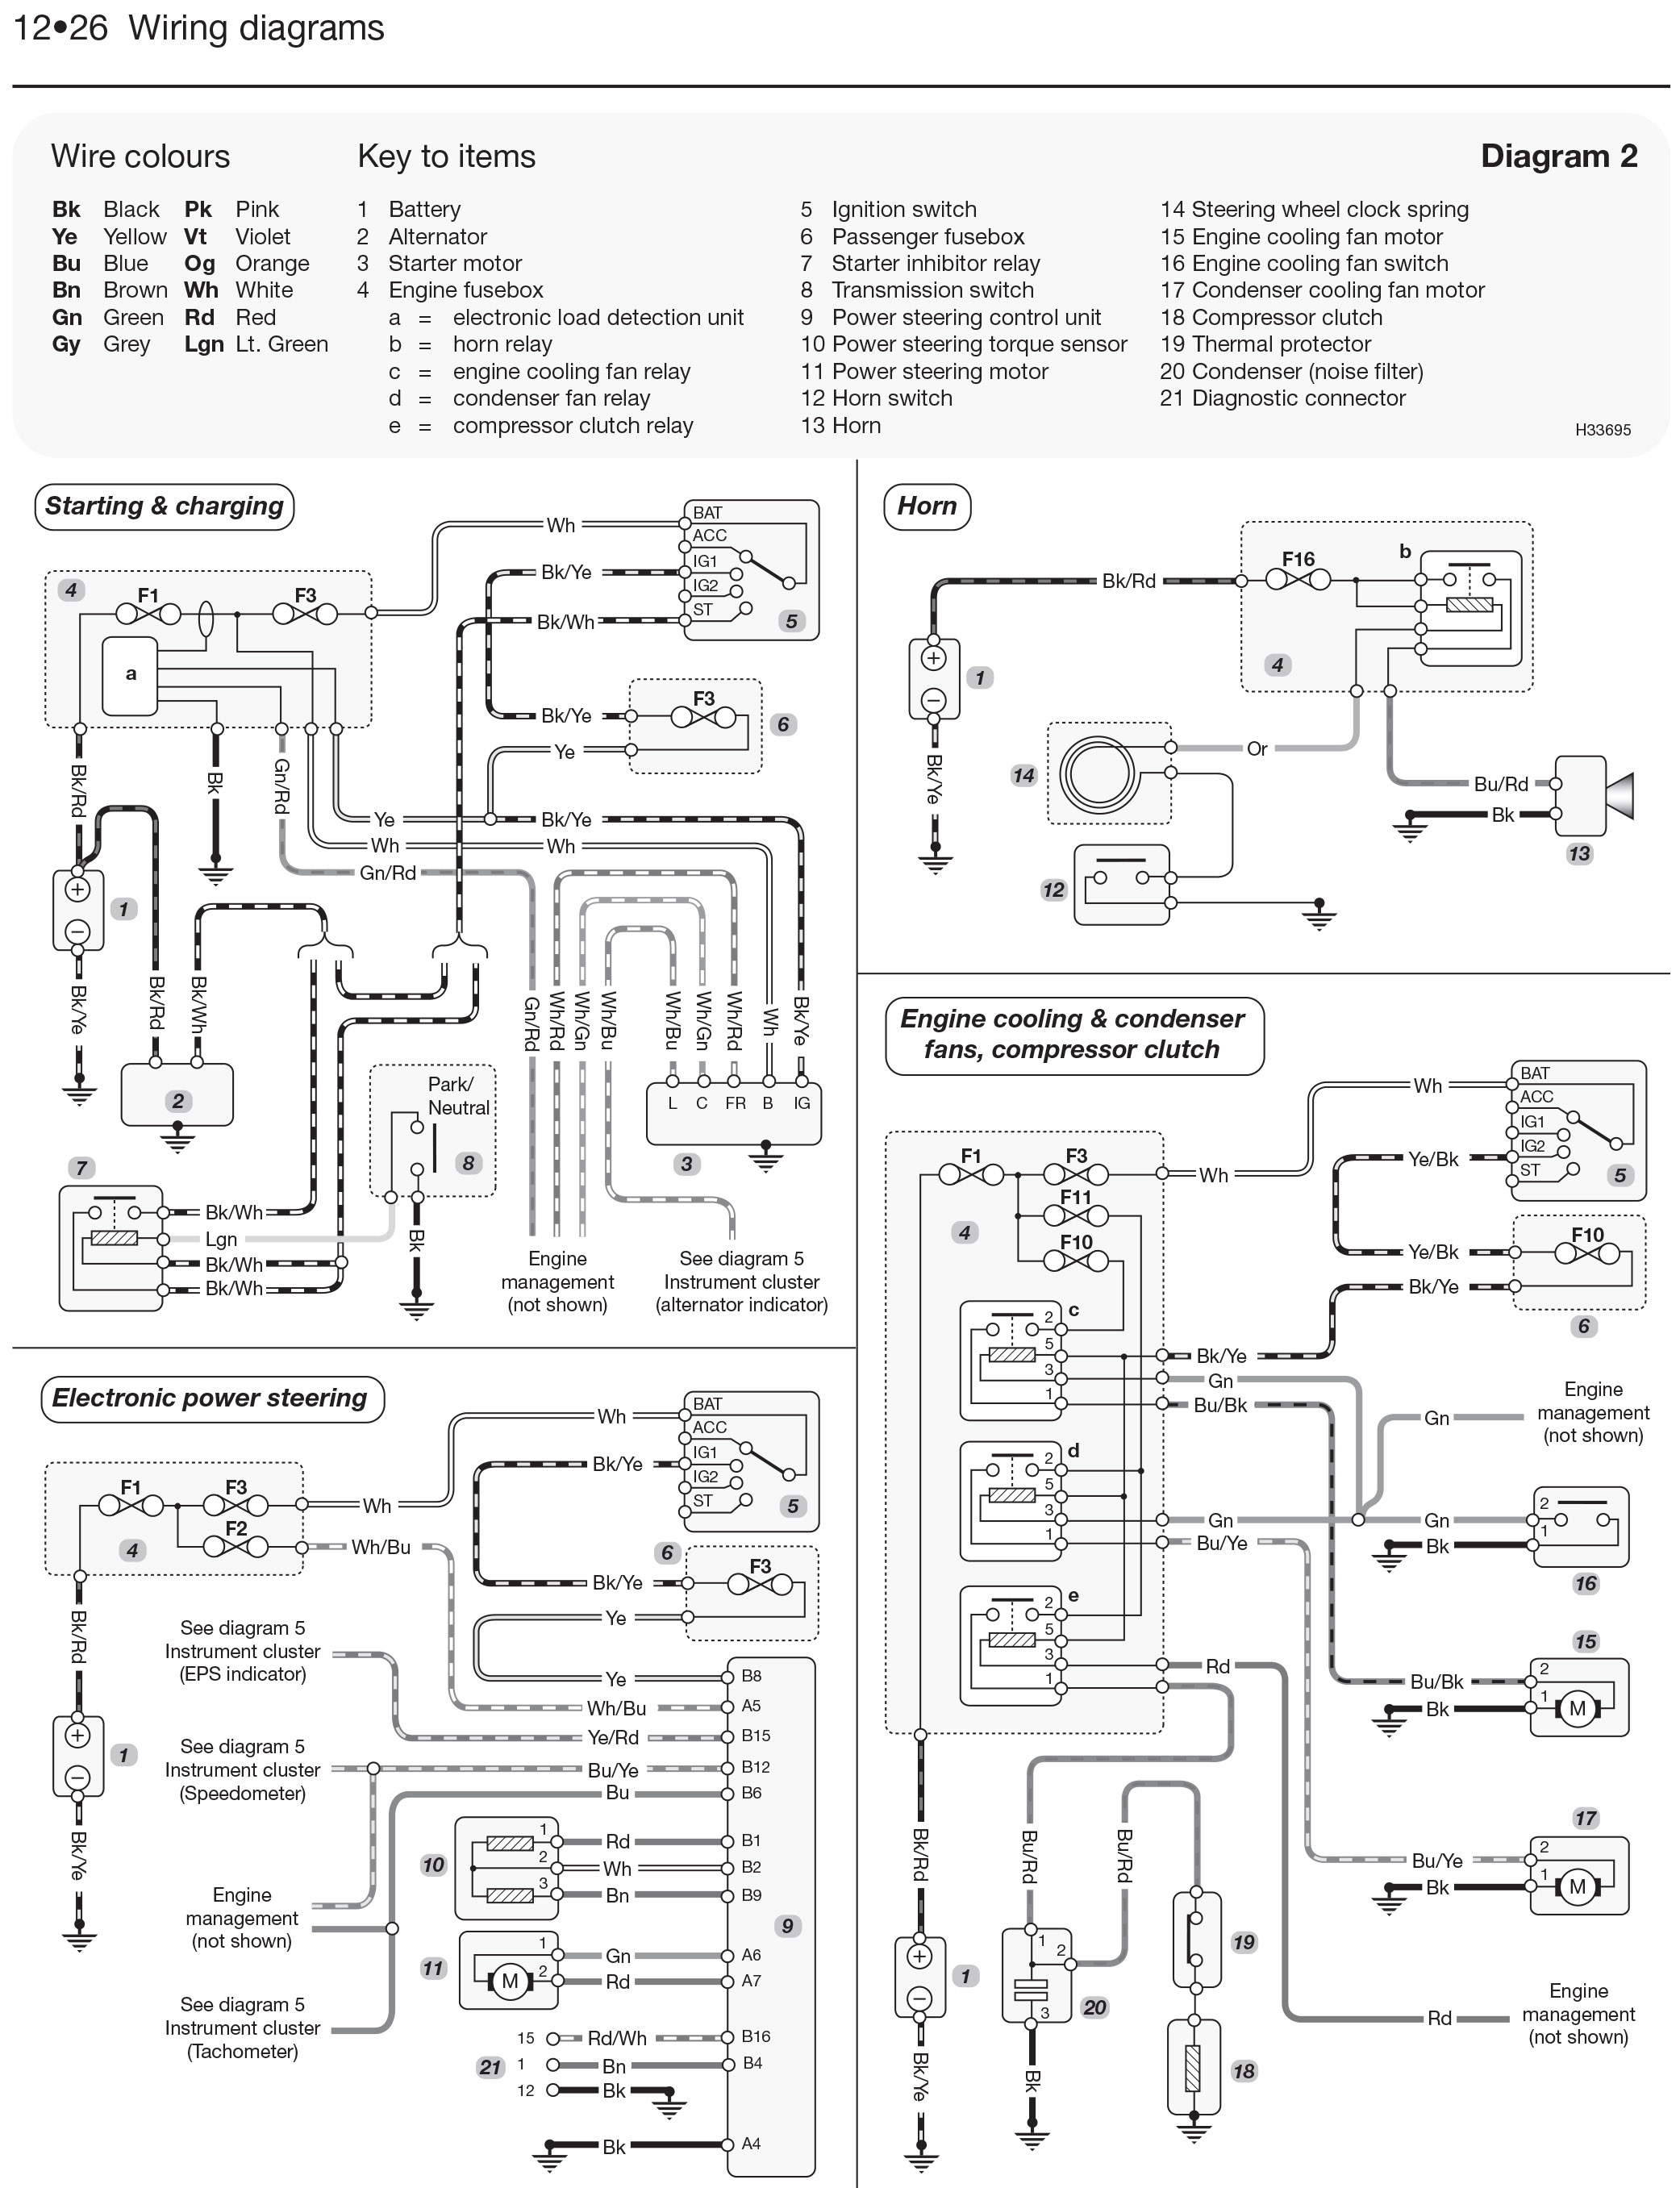 honda jazz (02 - 08) haynes repair manual | haynes publishing honda jazz wiring diagram honda jazz wiring diagram pdf #1